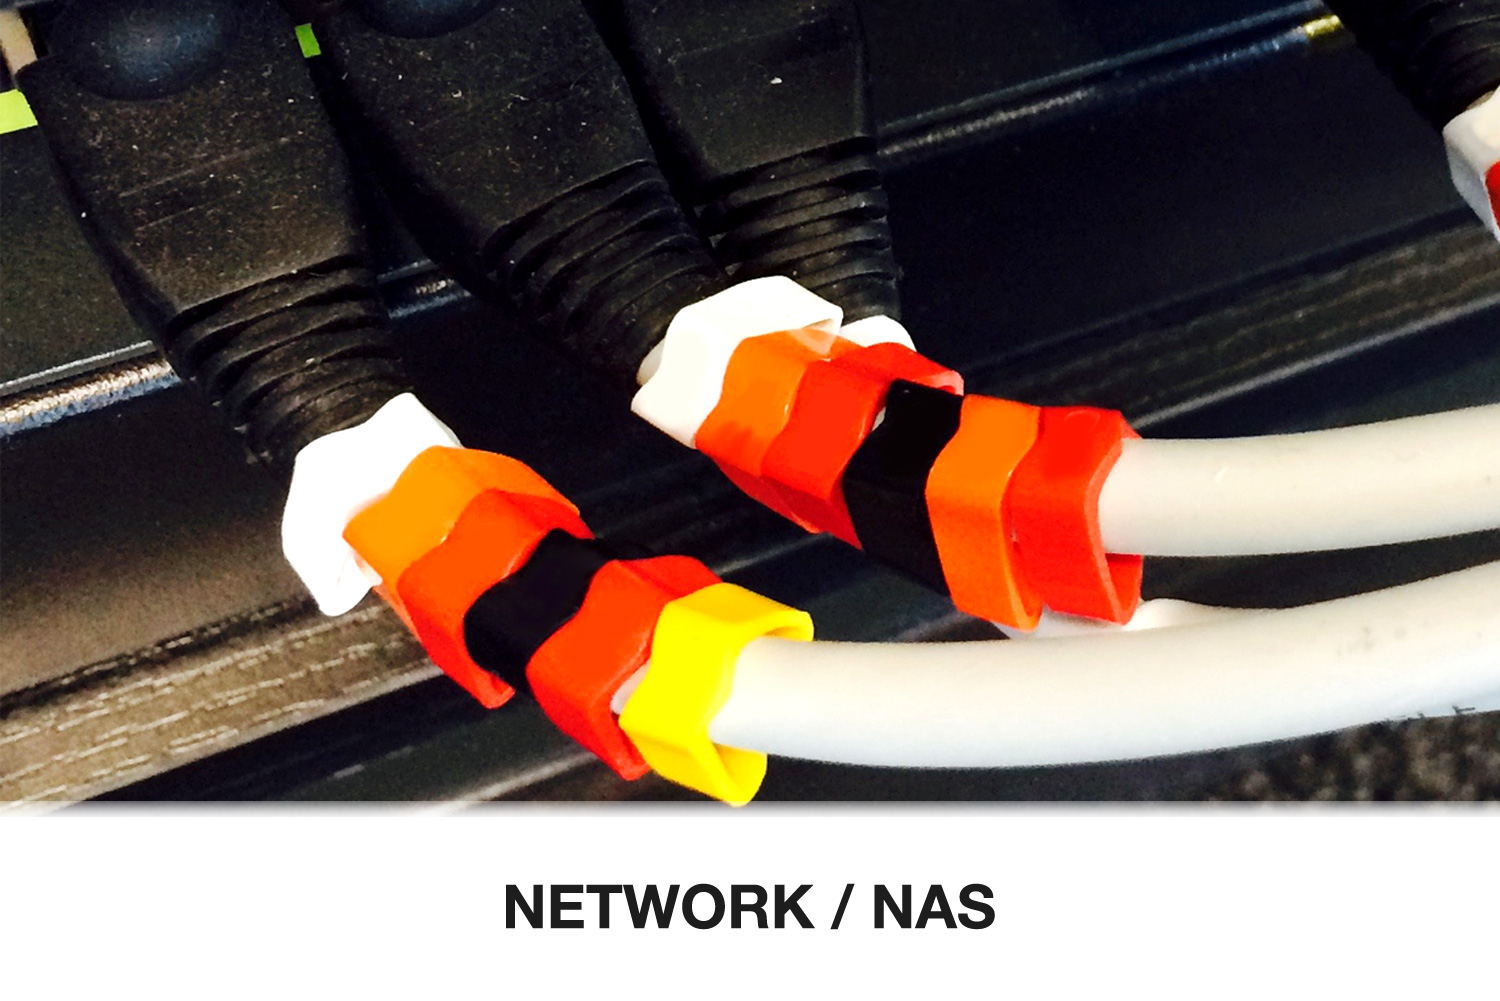 Networking / NAS